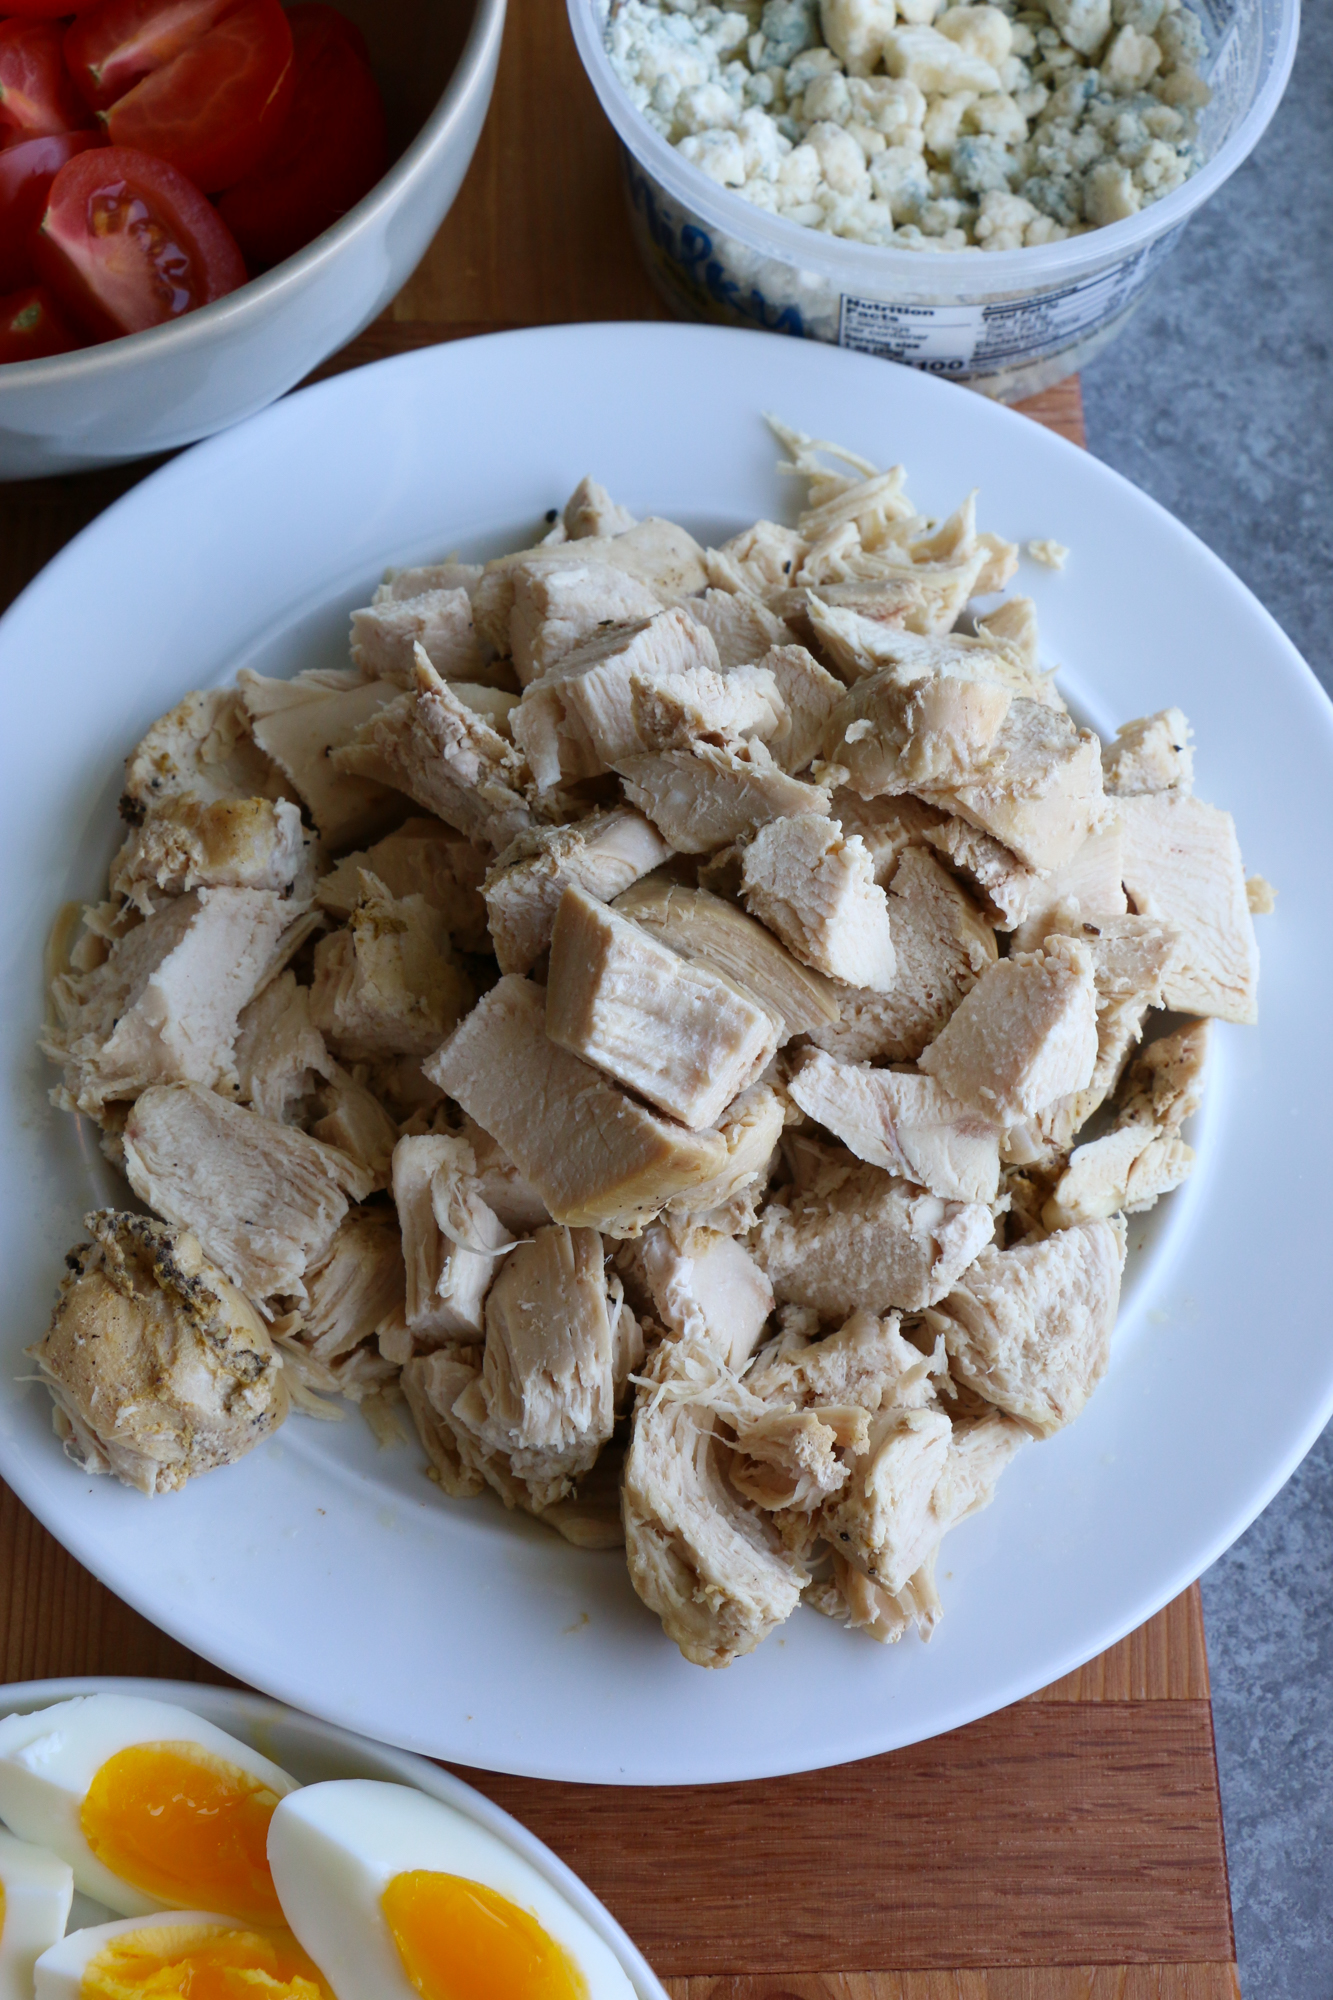 How To Cook Frozen Chicken Breasts In The Instant Pot. You can have delicious, juicy chicken in about 10 minutes! We hope you try this recipe.